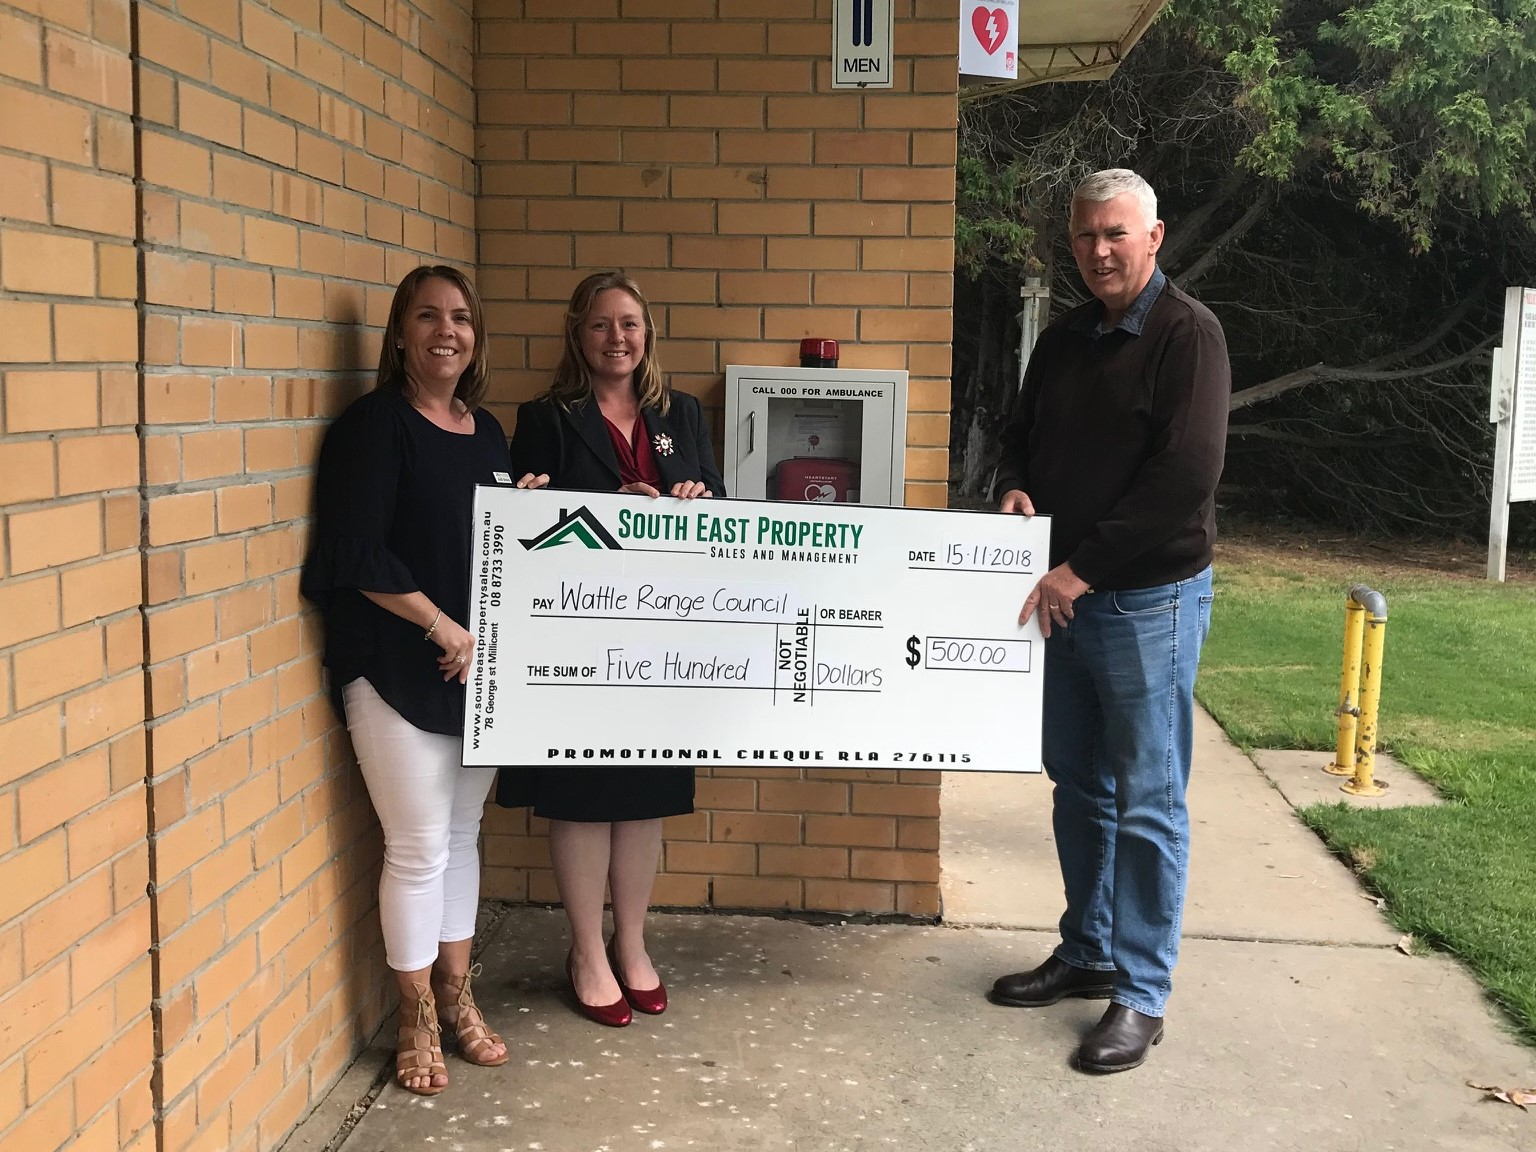 Swimming Lake Defibrillator Donation